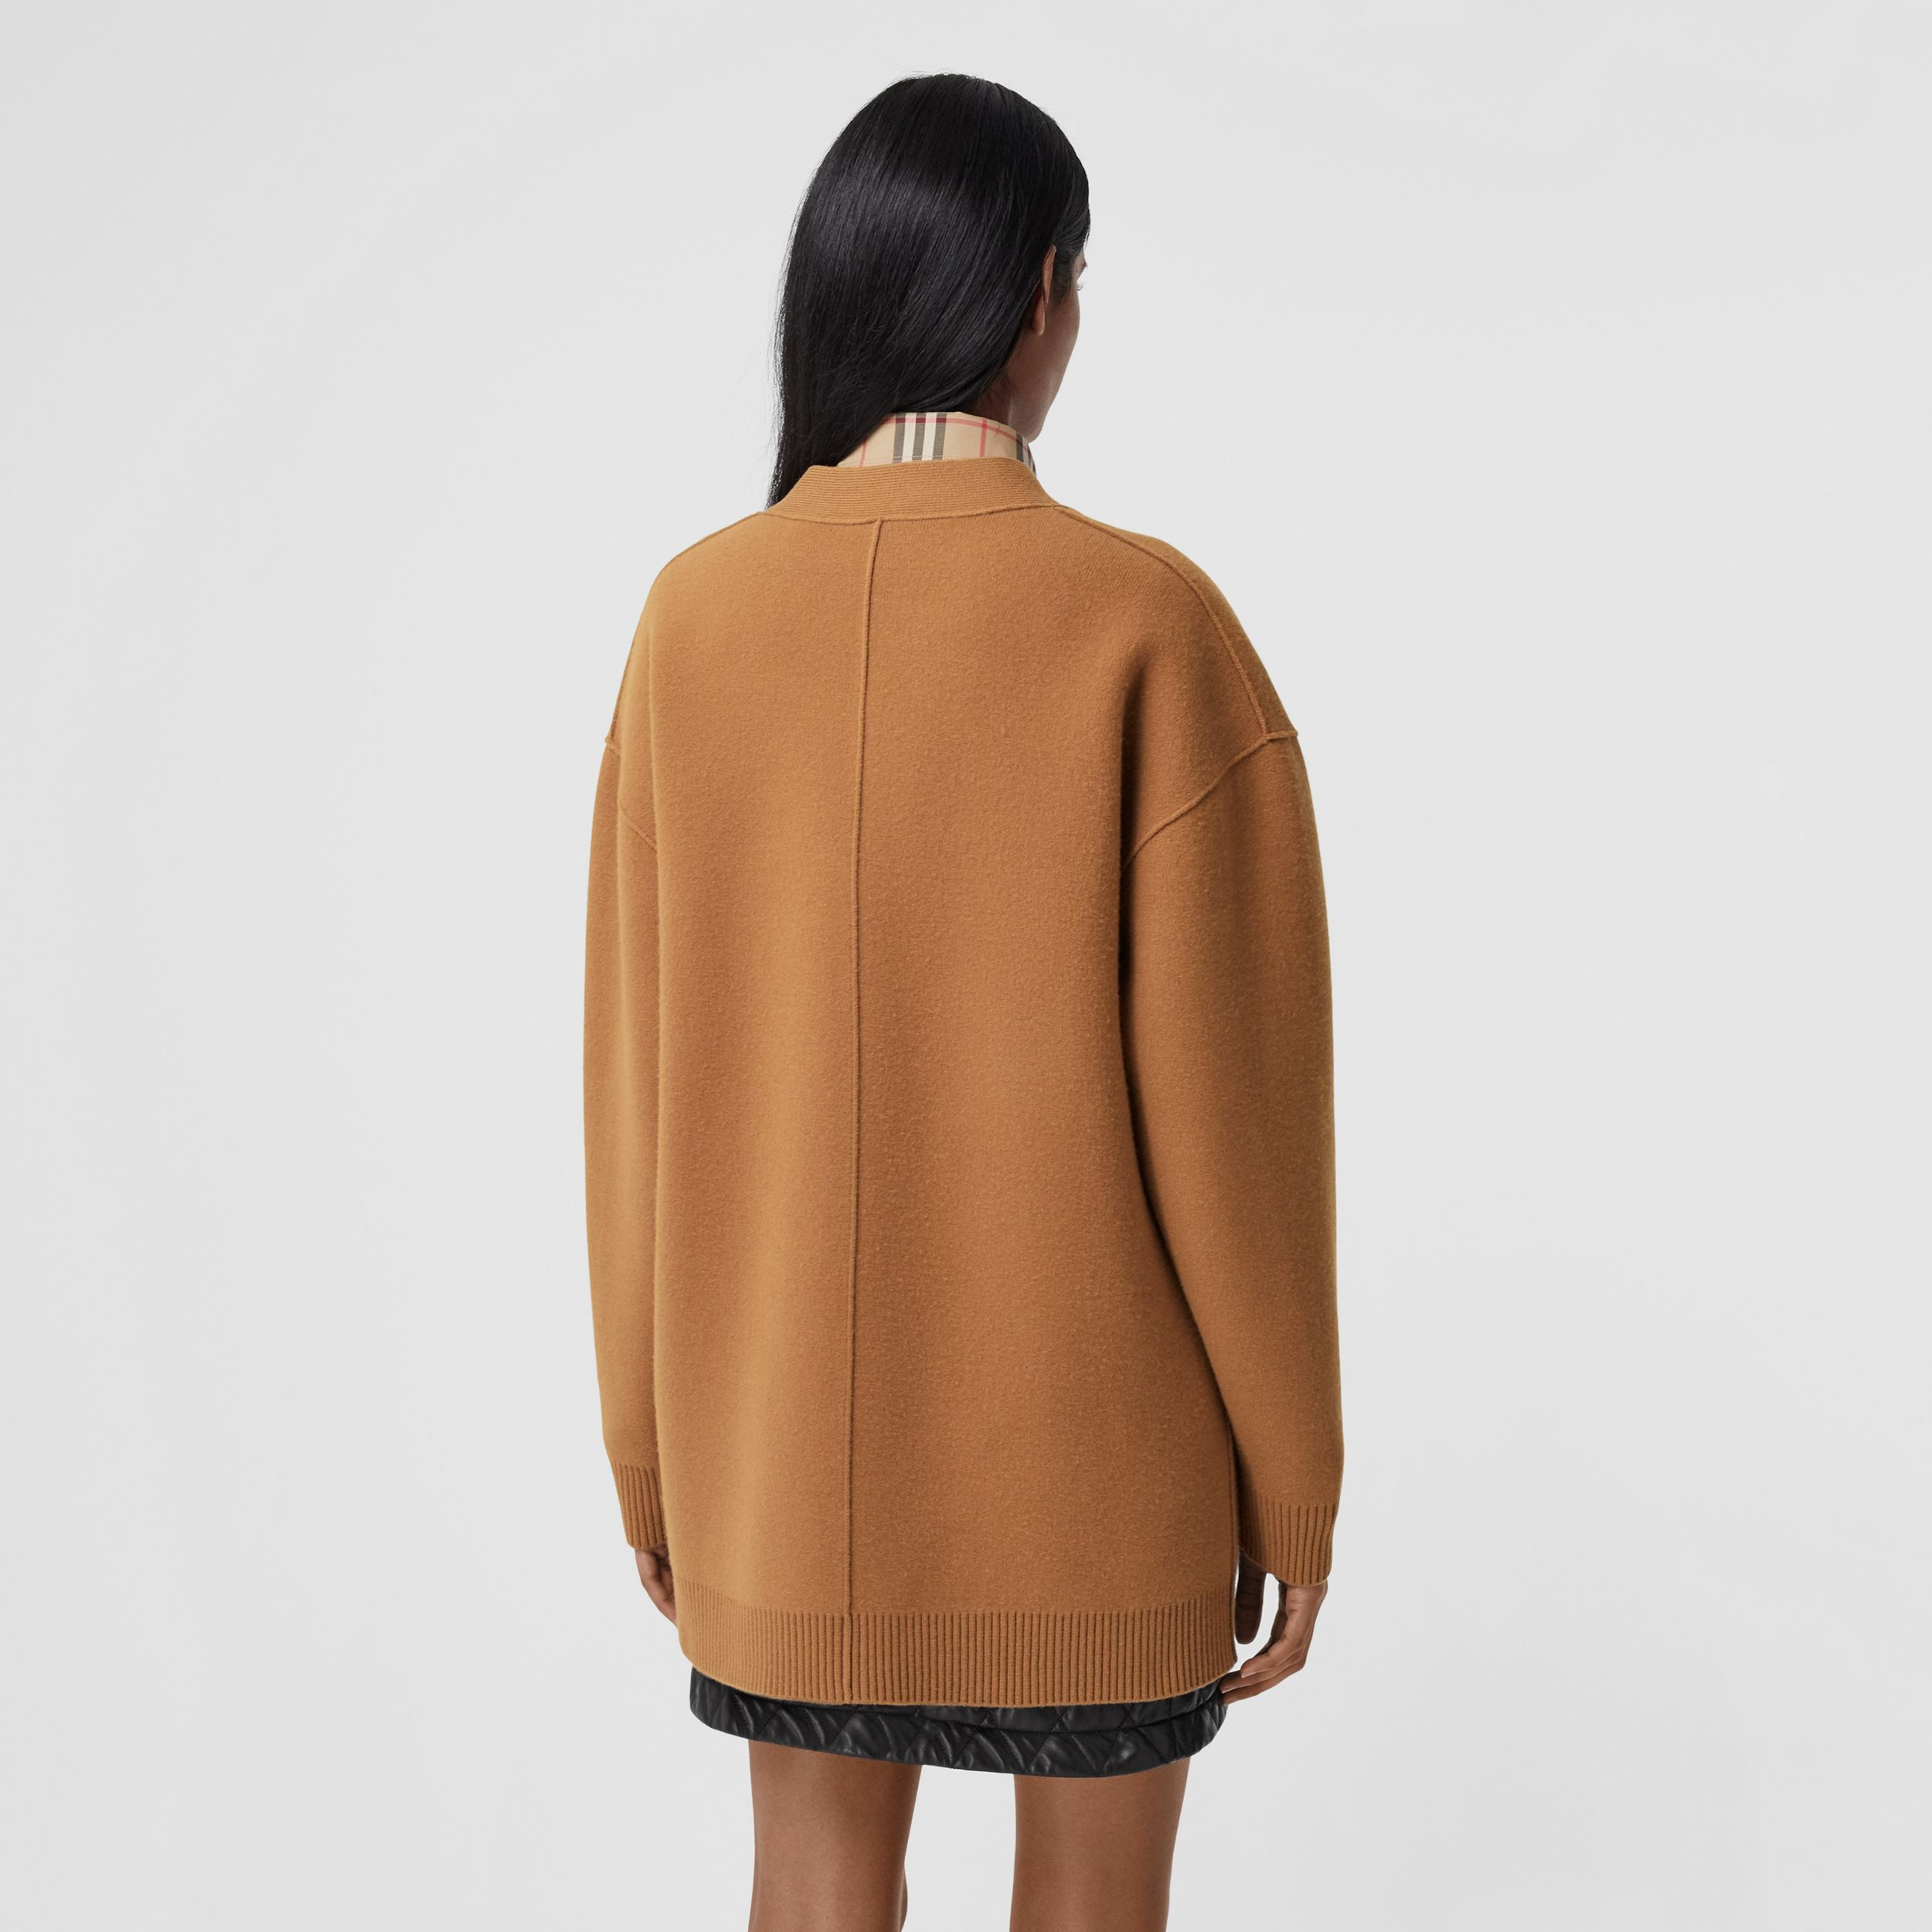 Merino Wool Cashmere Blend Oversized Cardigan in Warm Camel - Women | Burberry - 3